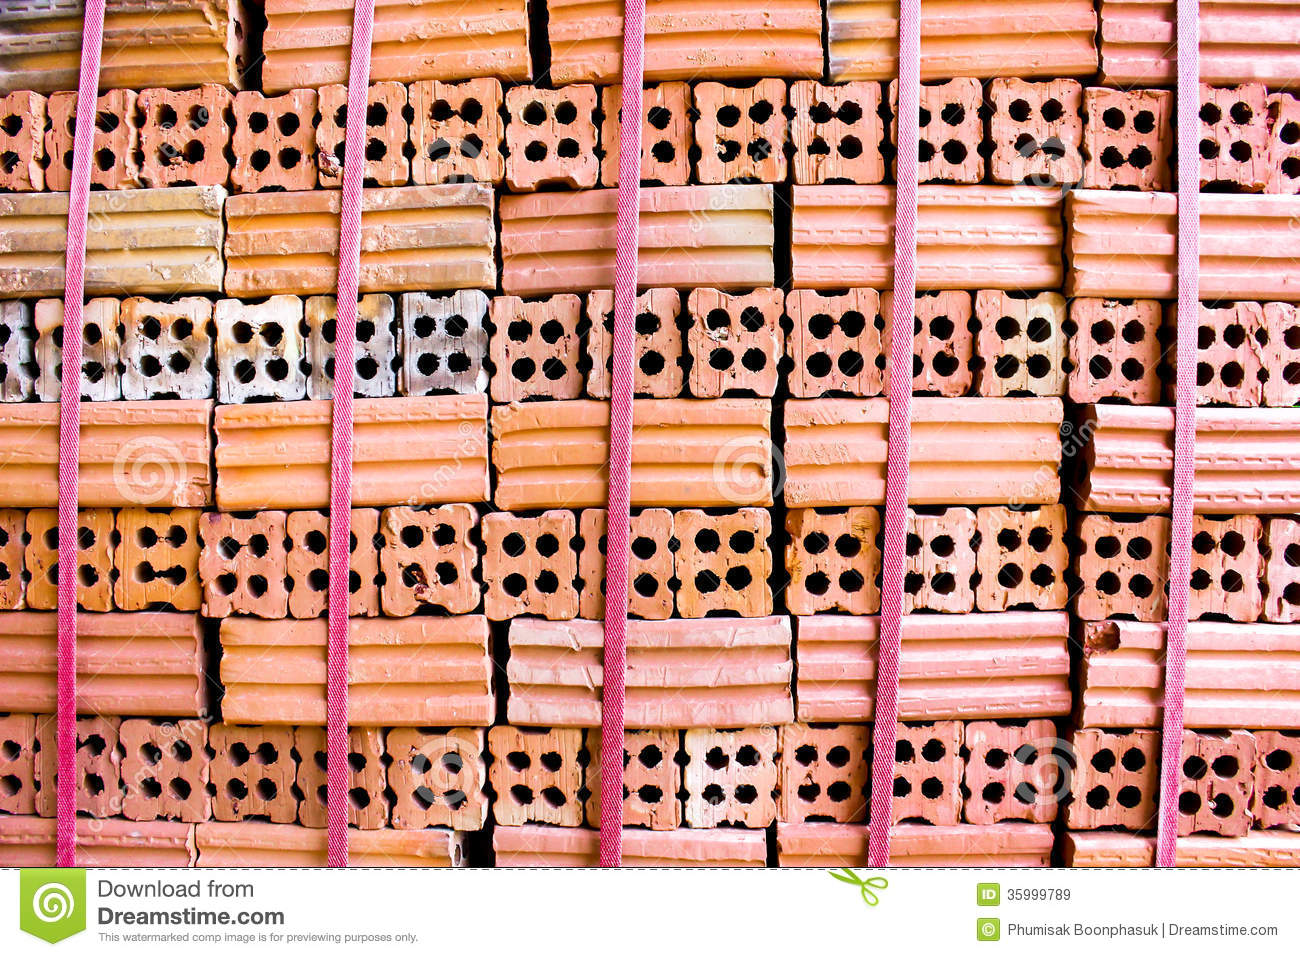 Brick kiln. collection set of red bricks stack in oven factory before ...